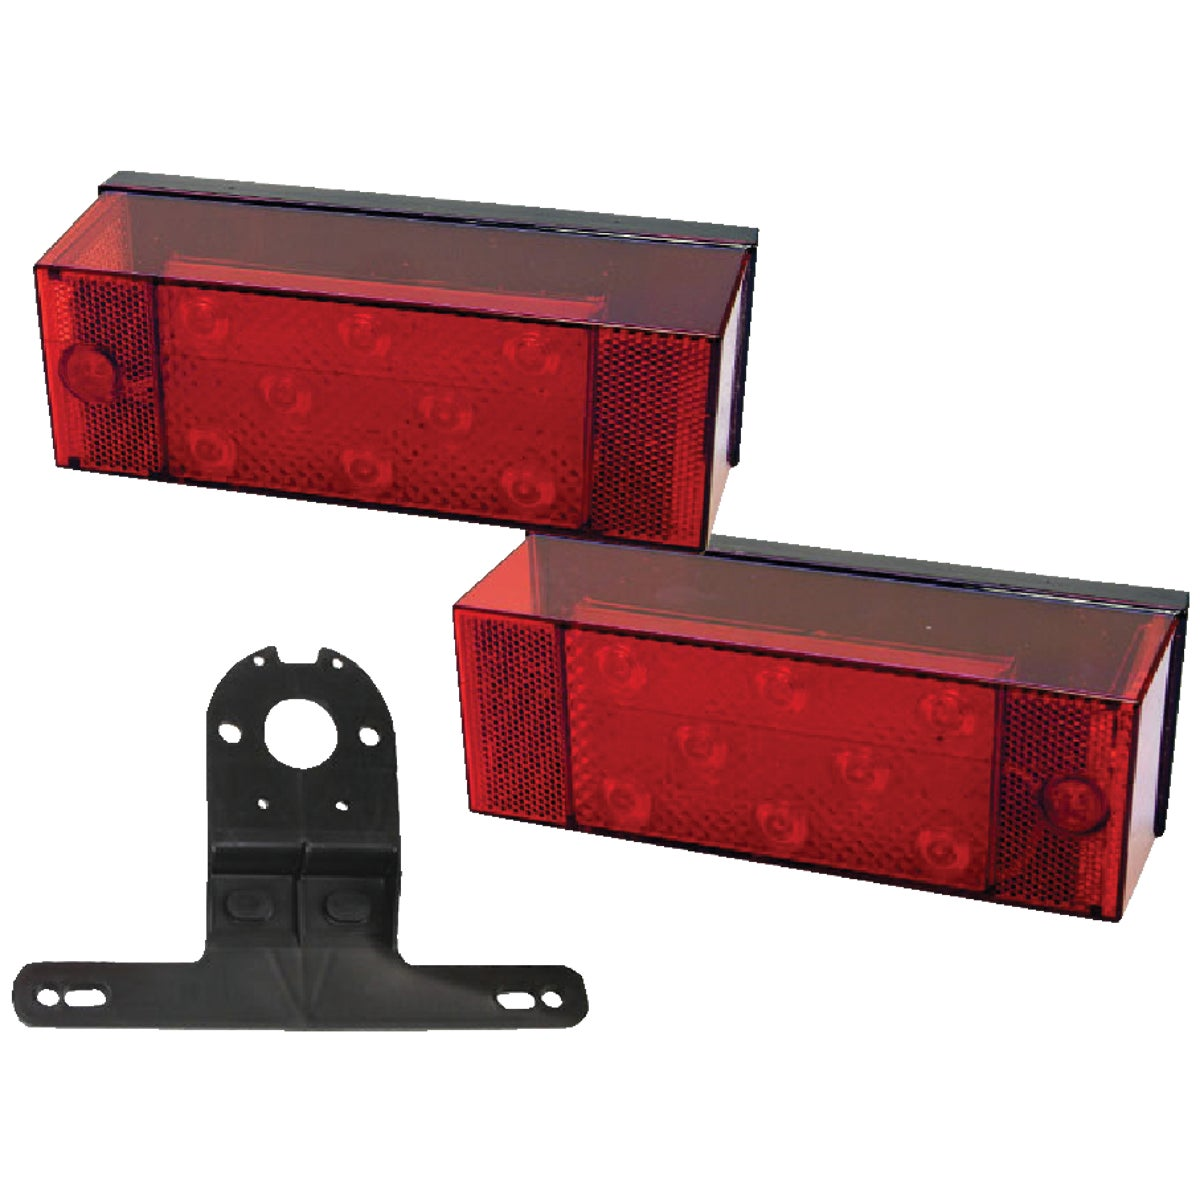 LED OVER80 REAR LGT KIT